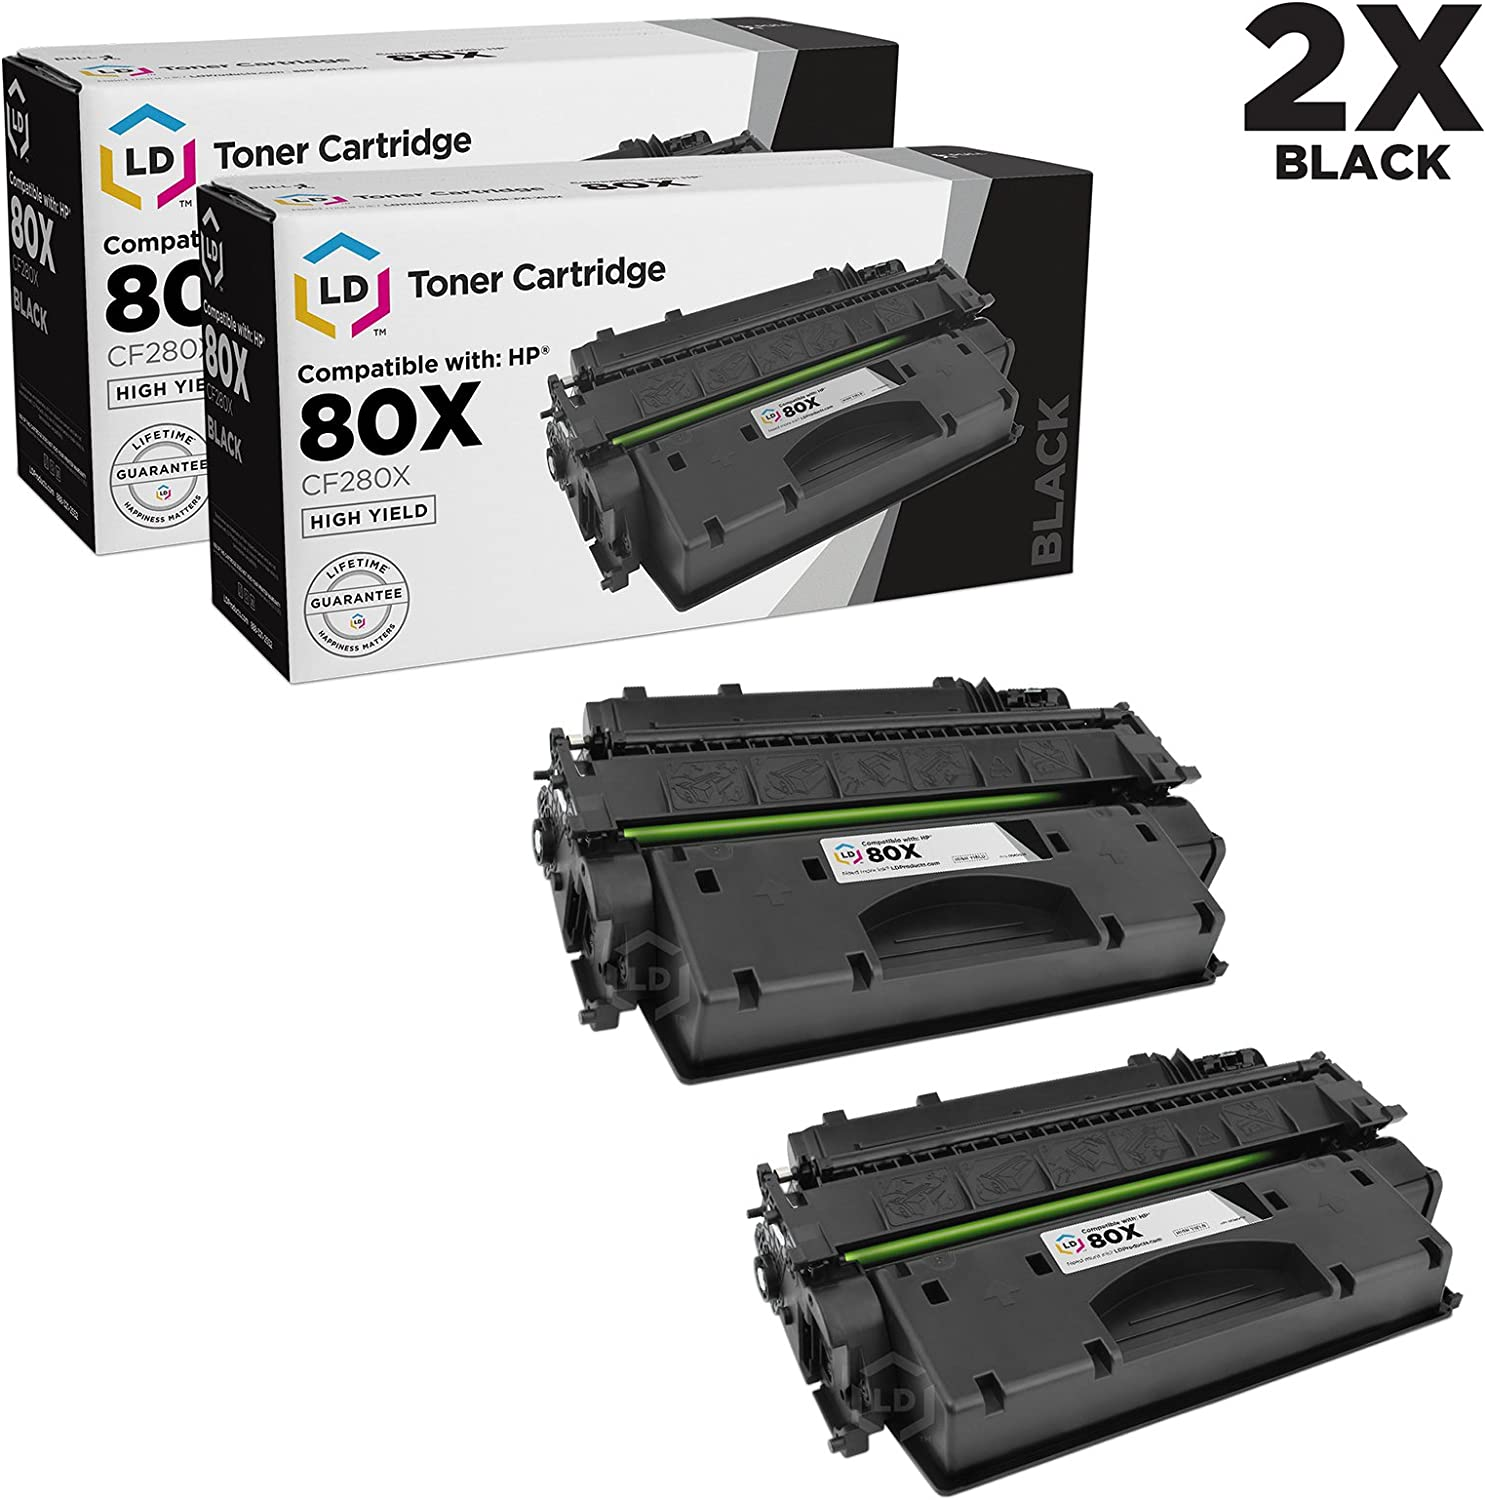 LD Compatible Toner Cartridge Replacements for HP 80X CF280X High Yield (Black, 2-Pack)